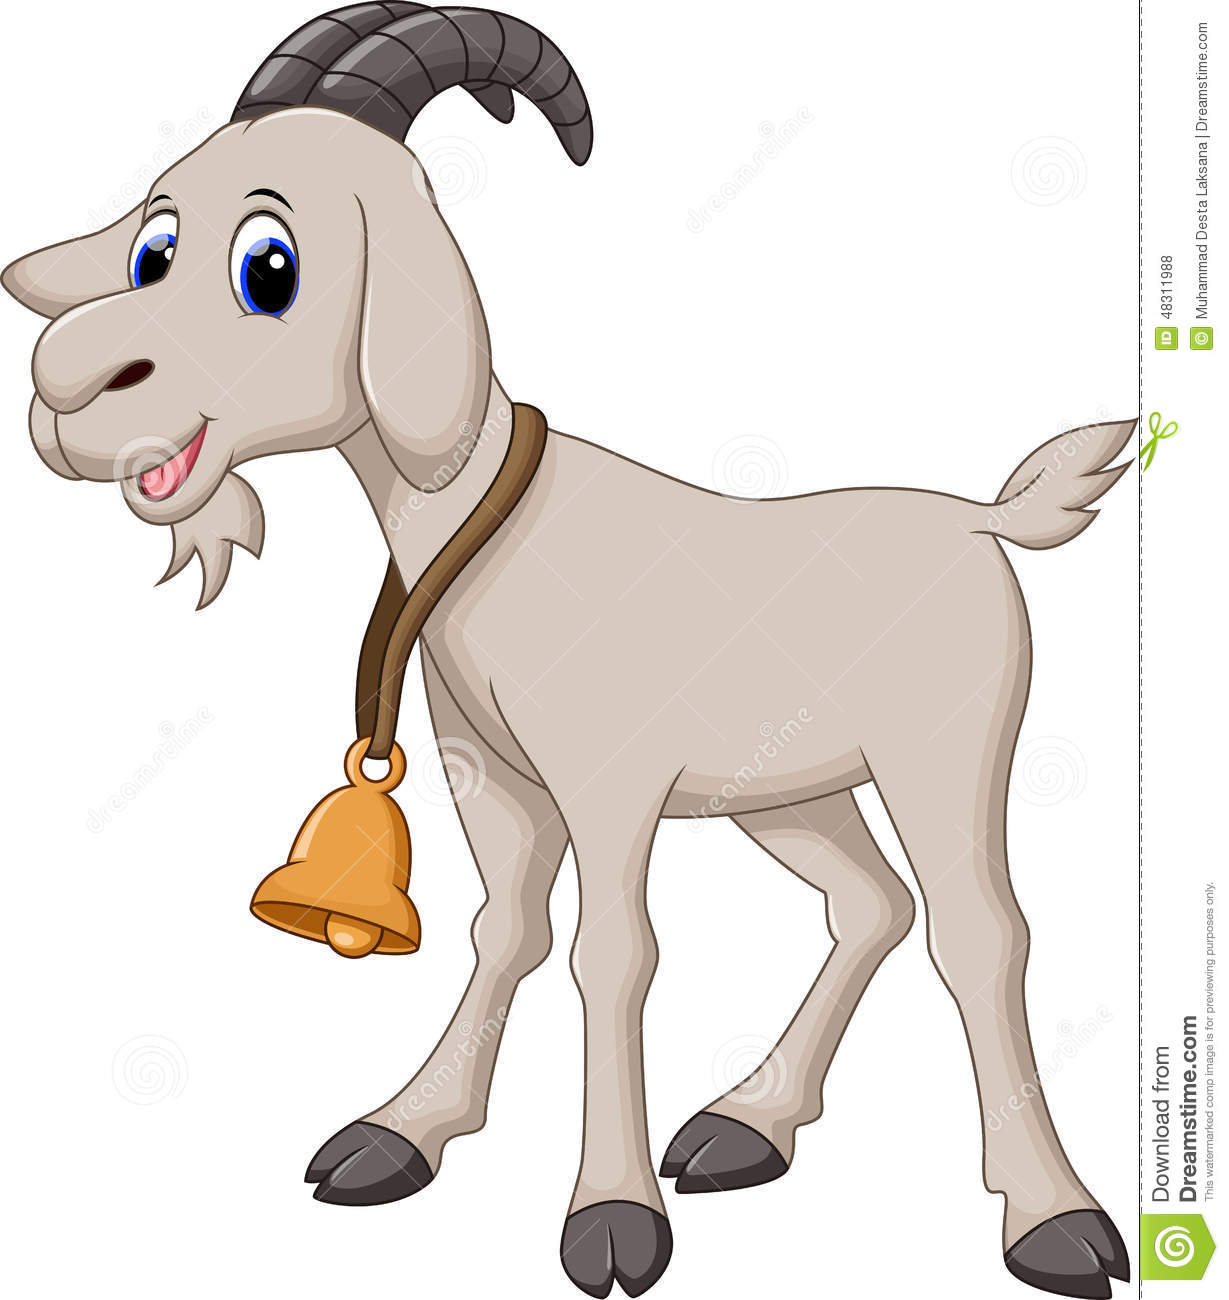 Cute Goat Cartoon Stock Illustration - Image: 48311988